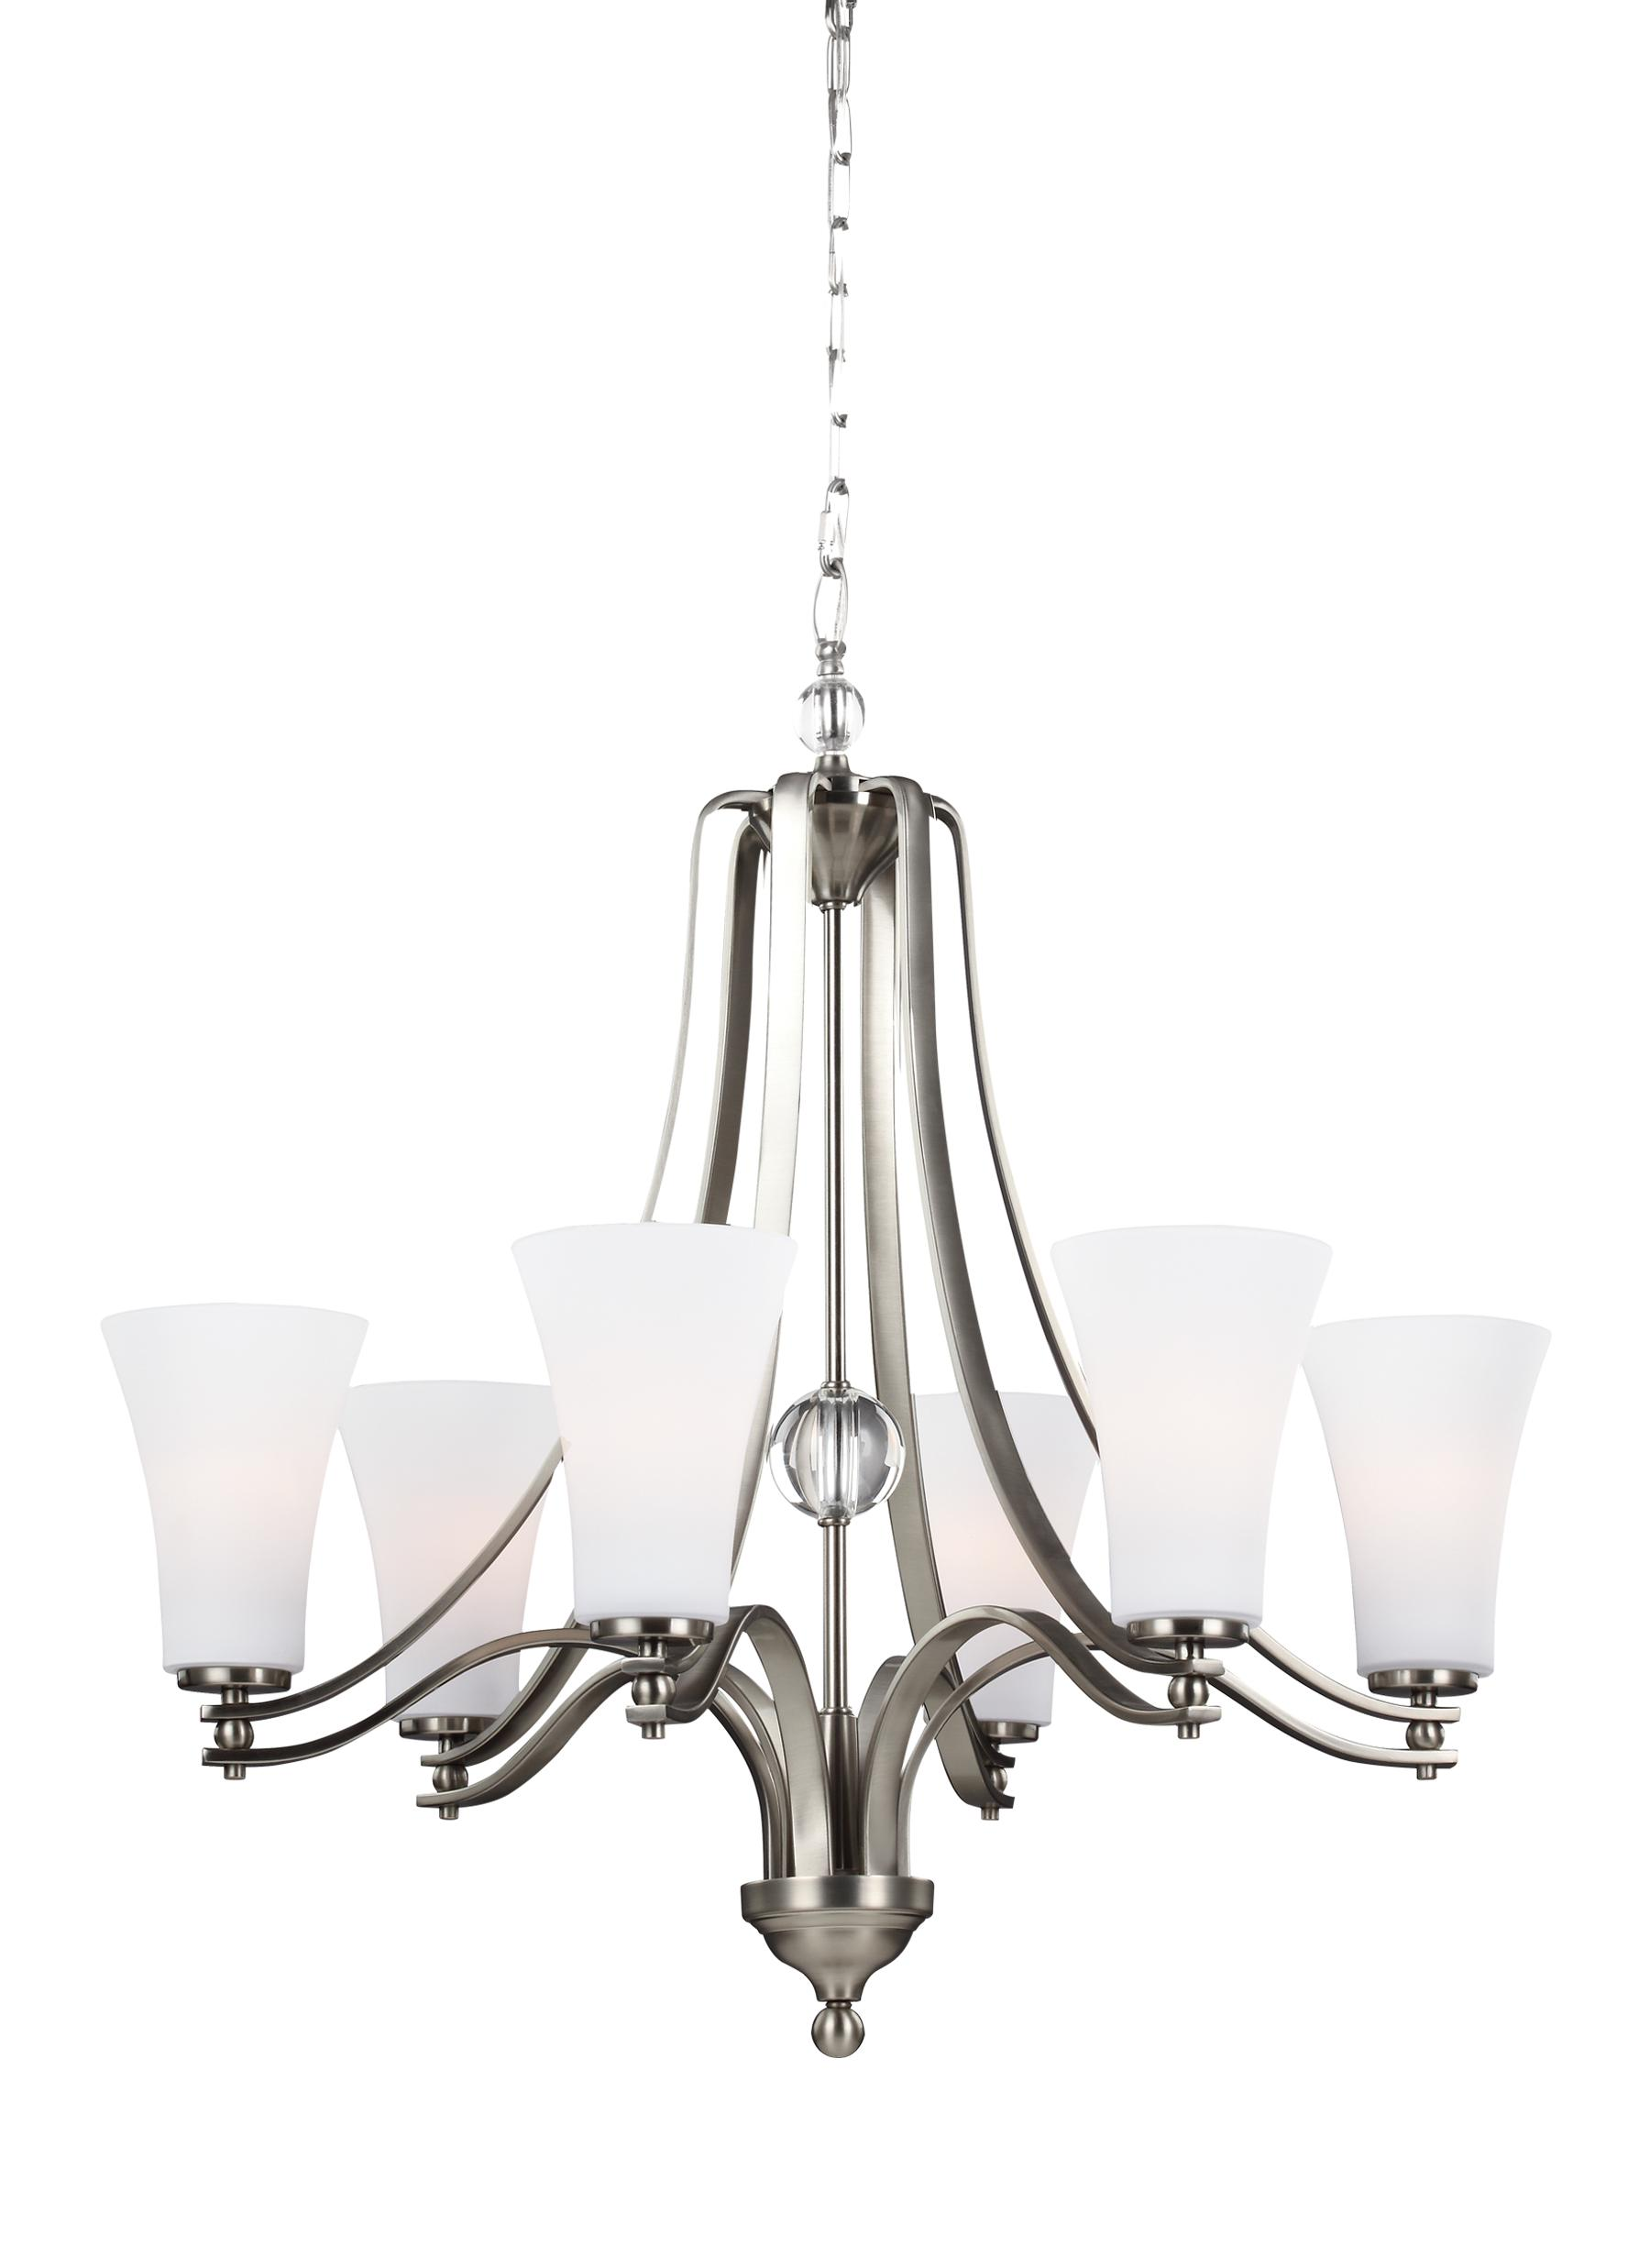 pasqual montecarlo murray miranda industries fans lamps table chandeliers lights style chandelier cabin seat lighting design feiss window discontinued breathtaking lamp moder light fan